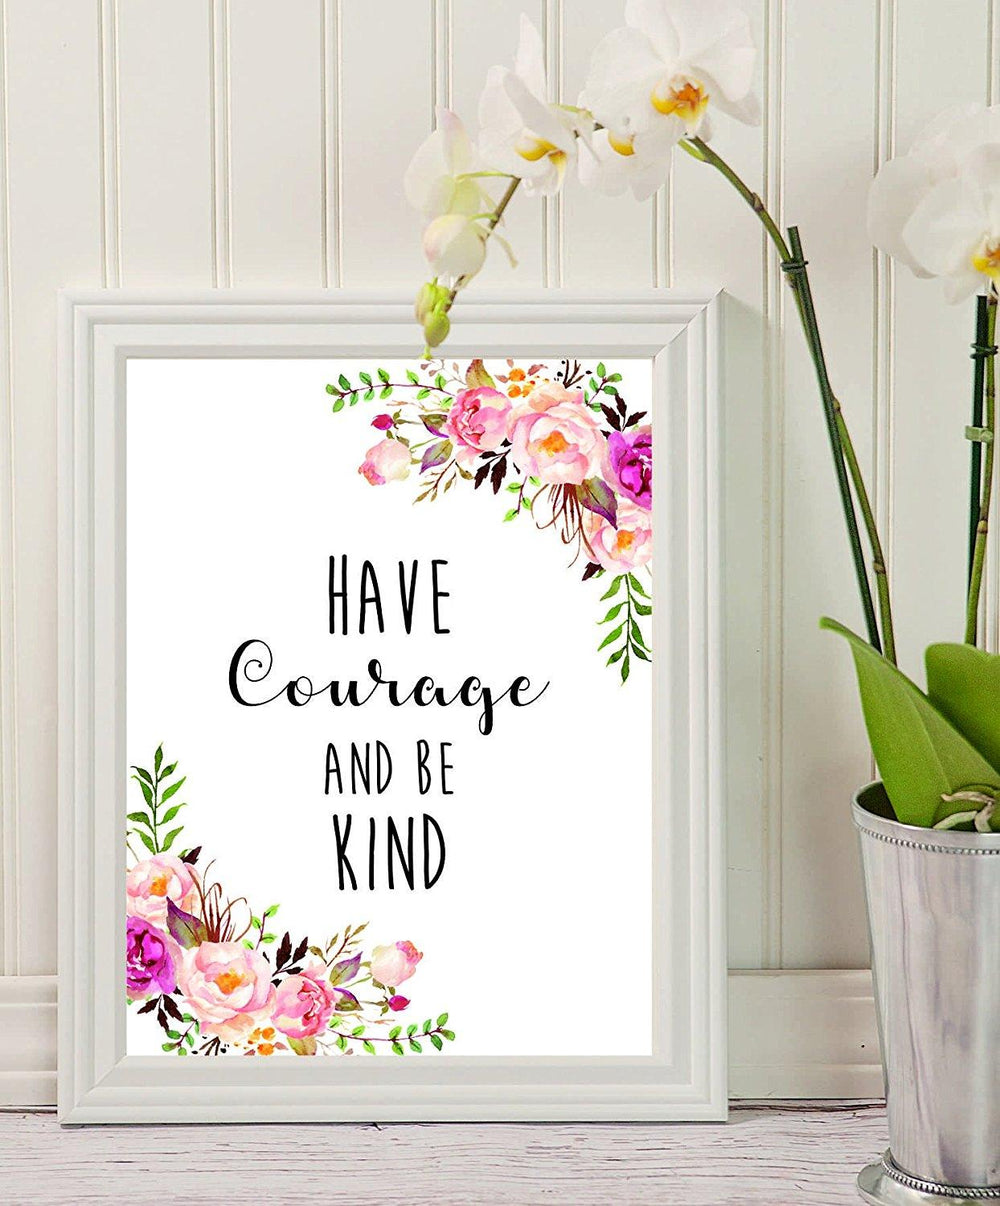 Wall Art - Have Courage and Be Kind - mom gift - teacher gift- small sign- Printable Quote - Motivational Print - Wall Decor - Home Decor - College Dorm Room Decorations - Living Room Decor - BOSTON CREATIVE COMPANY